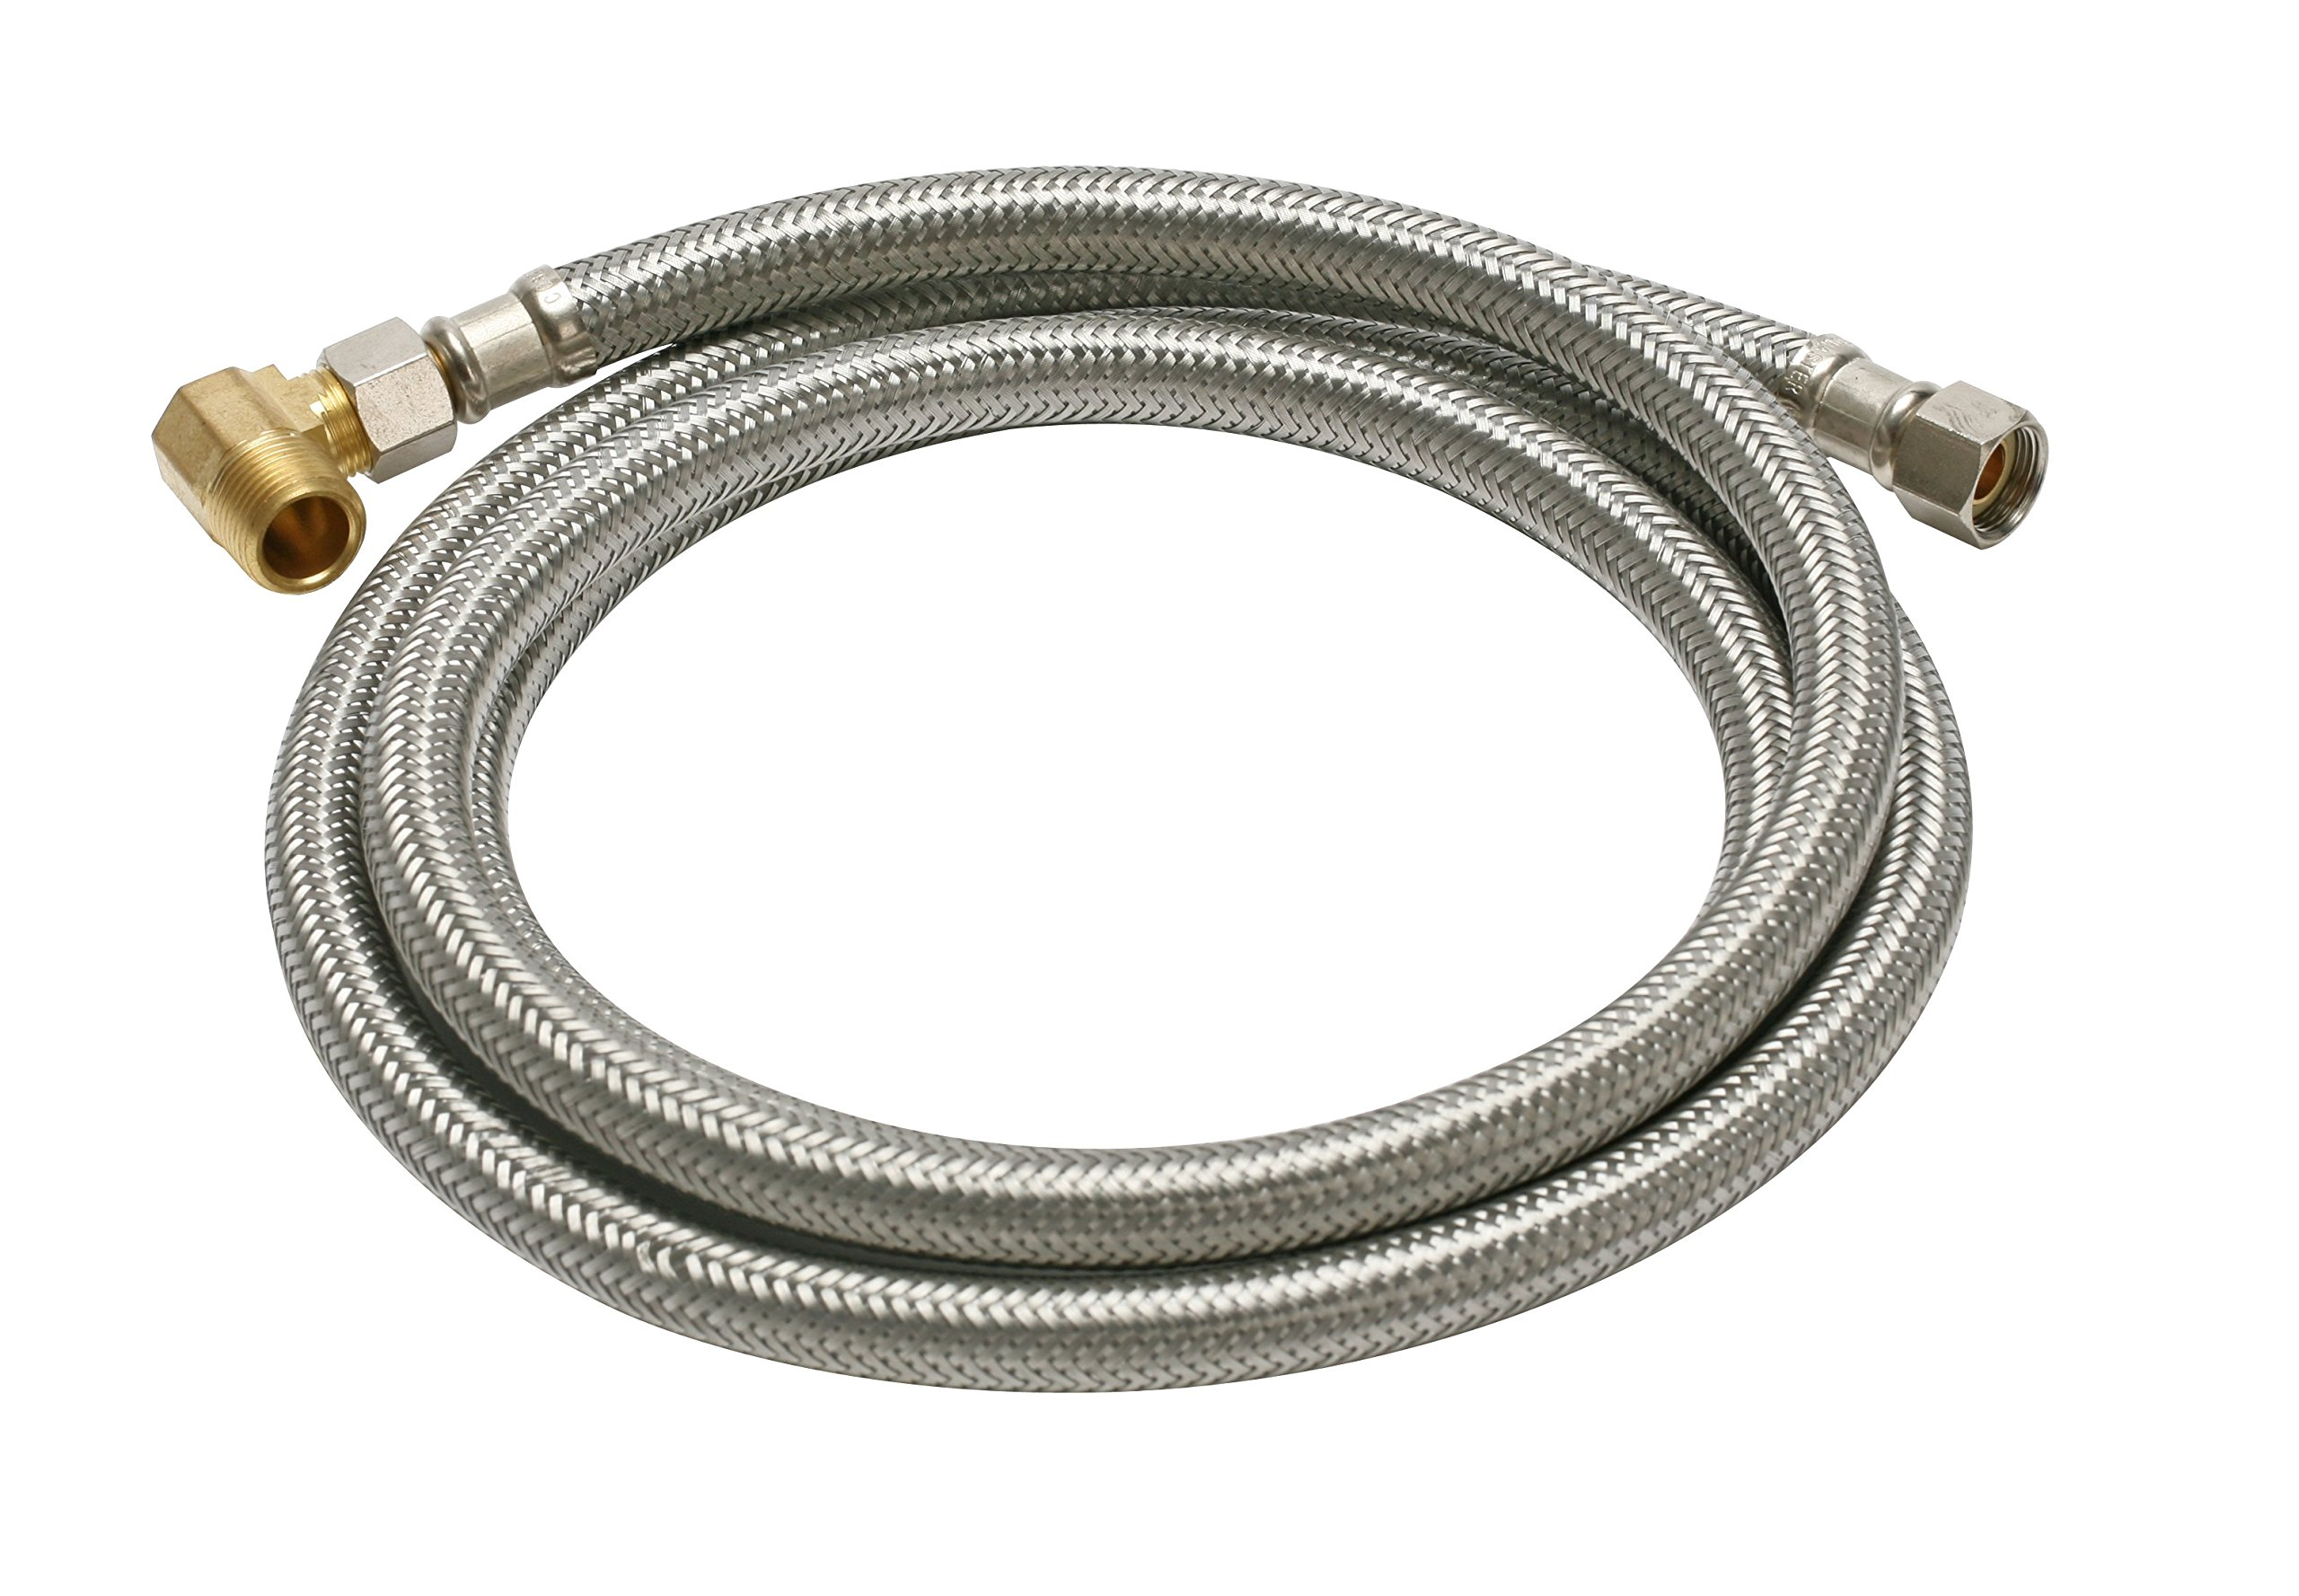 Fluidmaster B6W72 Dishwasher Connector With 1/2-Inch Elbow Fitting, Braided Stainless Steel - 3/8 Female Compression Thread x 3/8 Female Compression Thread, 6 Ft. (72-Inch) Length